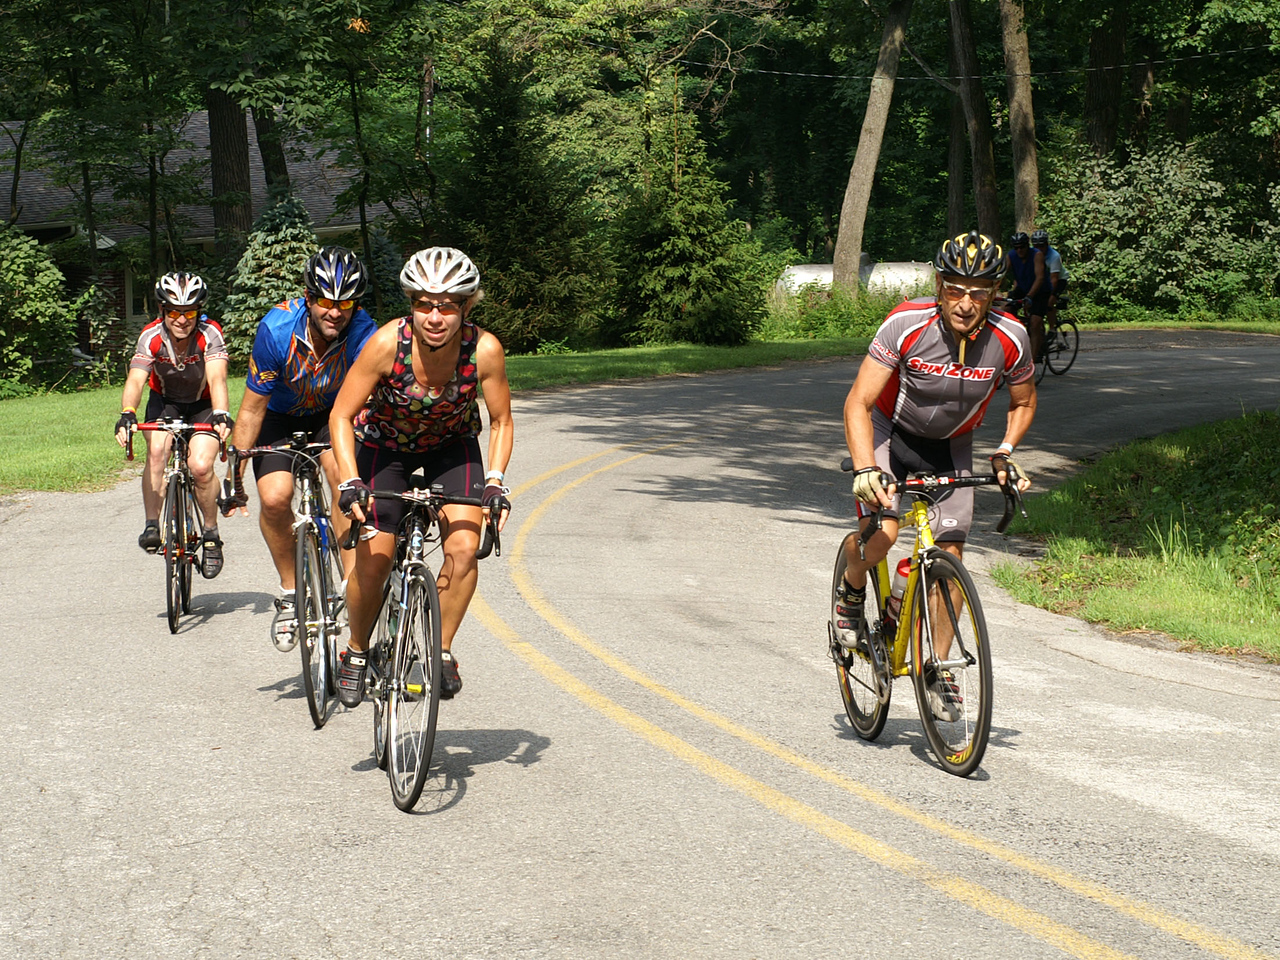 Attacking the hills on Taylor road on Sunday